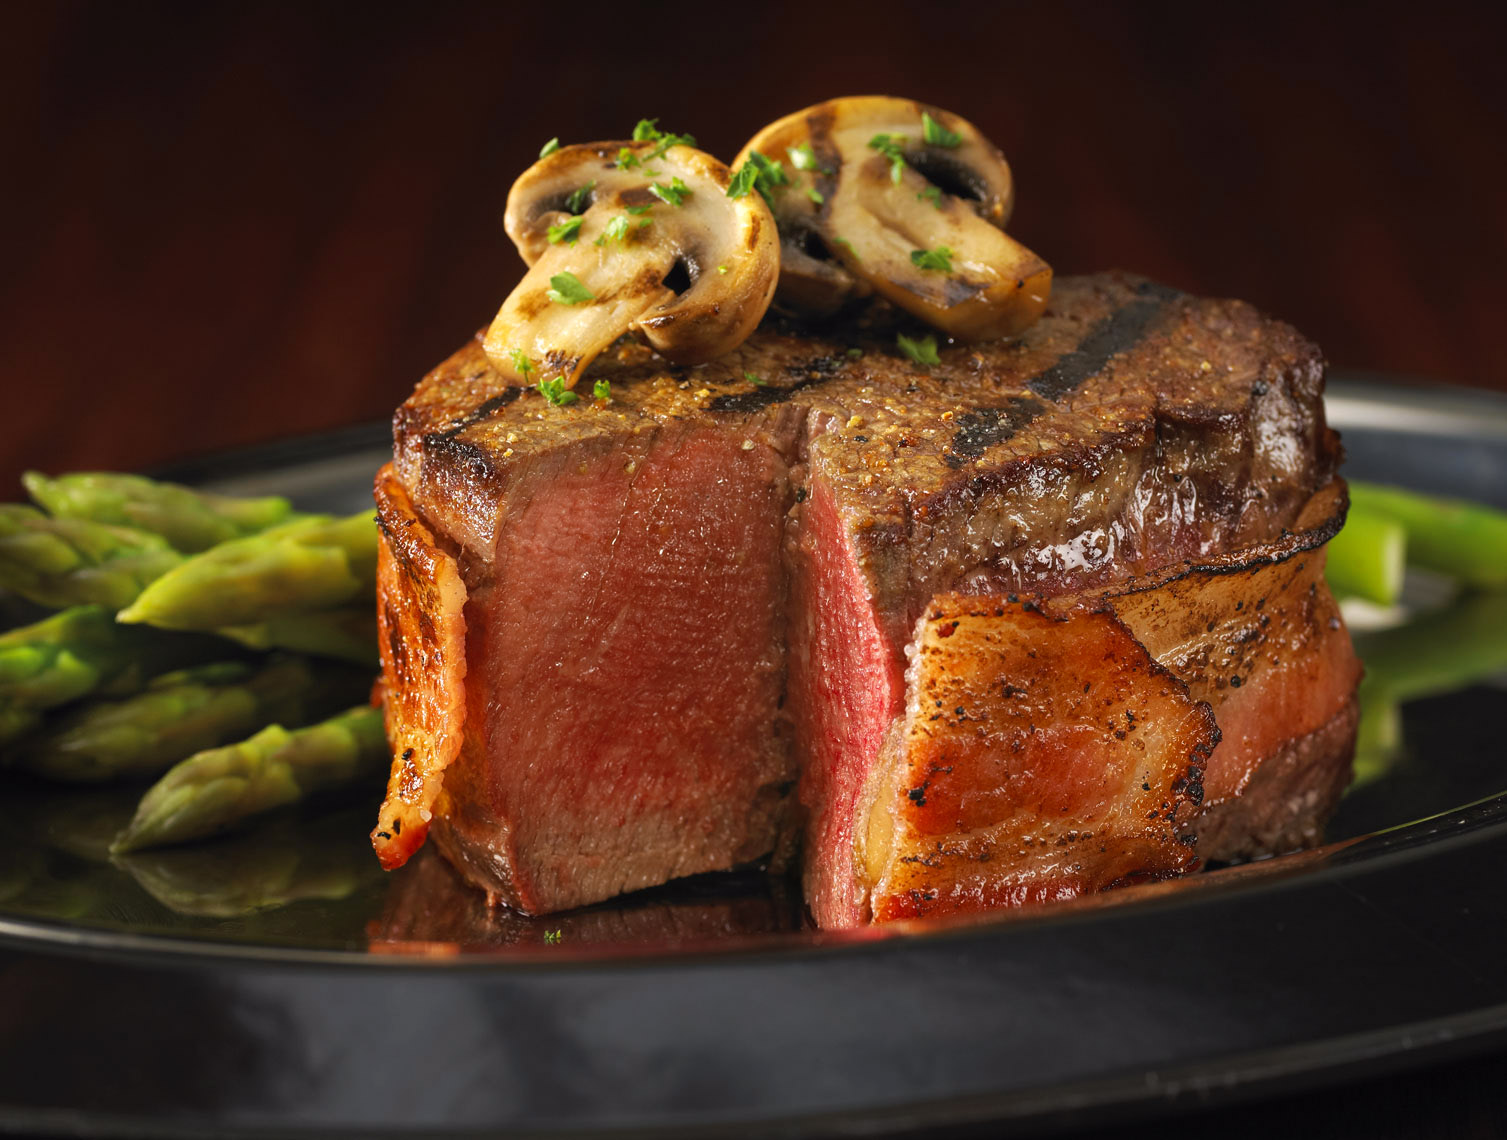 Bacon wrapped steak/slice missing/mushrooms/asparagus on the side/food photography, InsideOut Studios